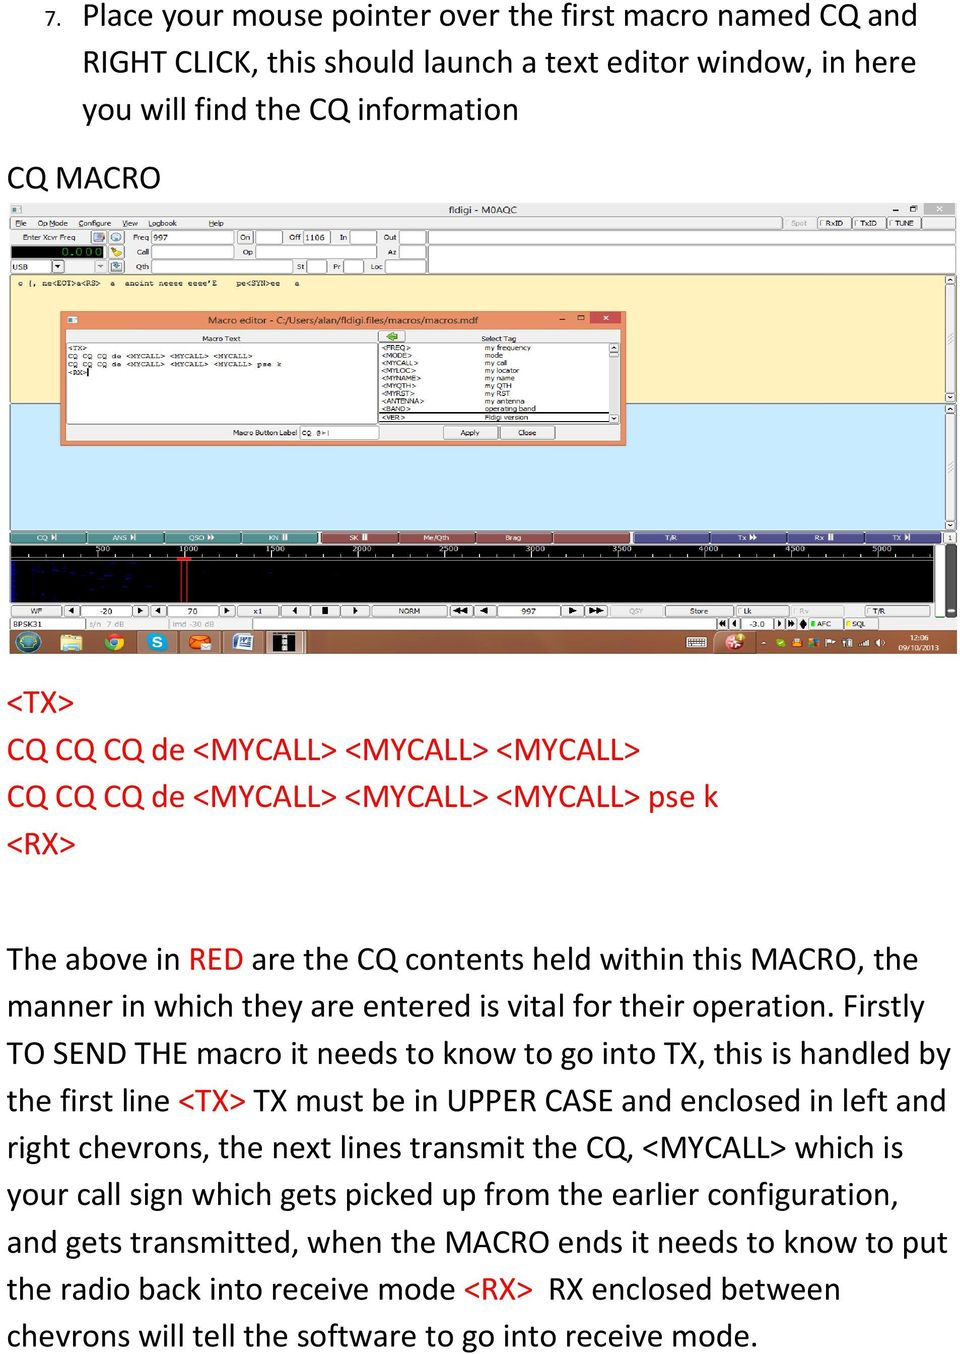 Firstly TO SEND THE macro it needs to know to go into TX, this is handled by the first line TX must be in UPPER CASE and enclosed in left and right chevrons, the next lines transmit the CQ, <MYCALL>